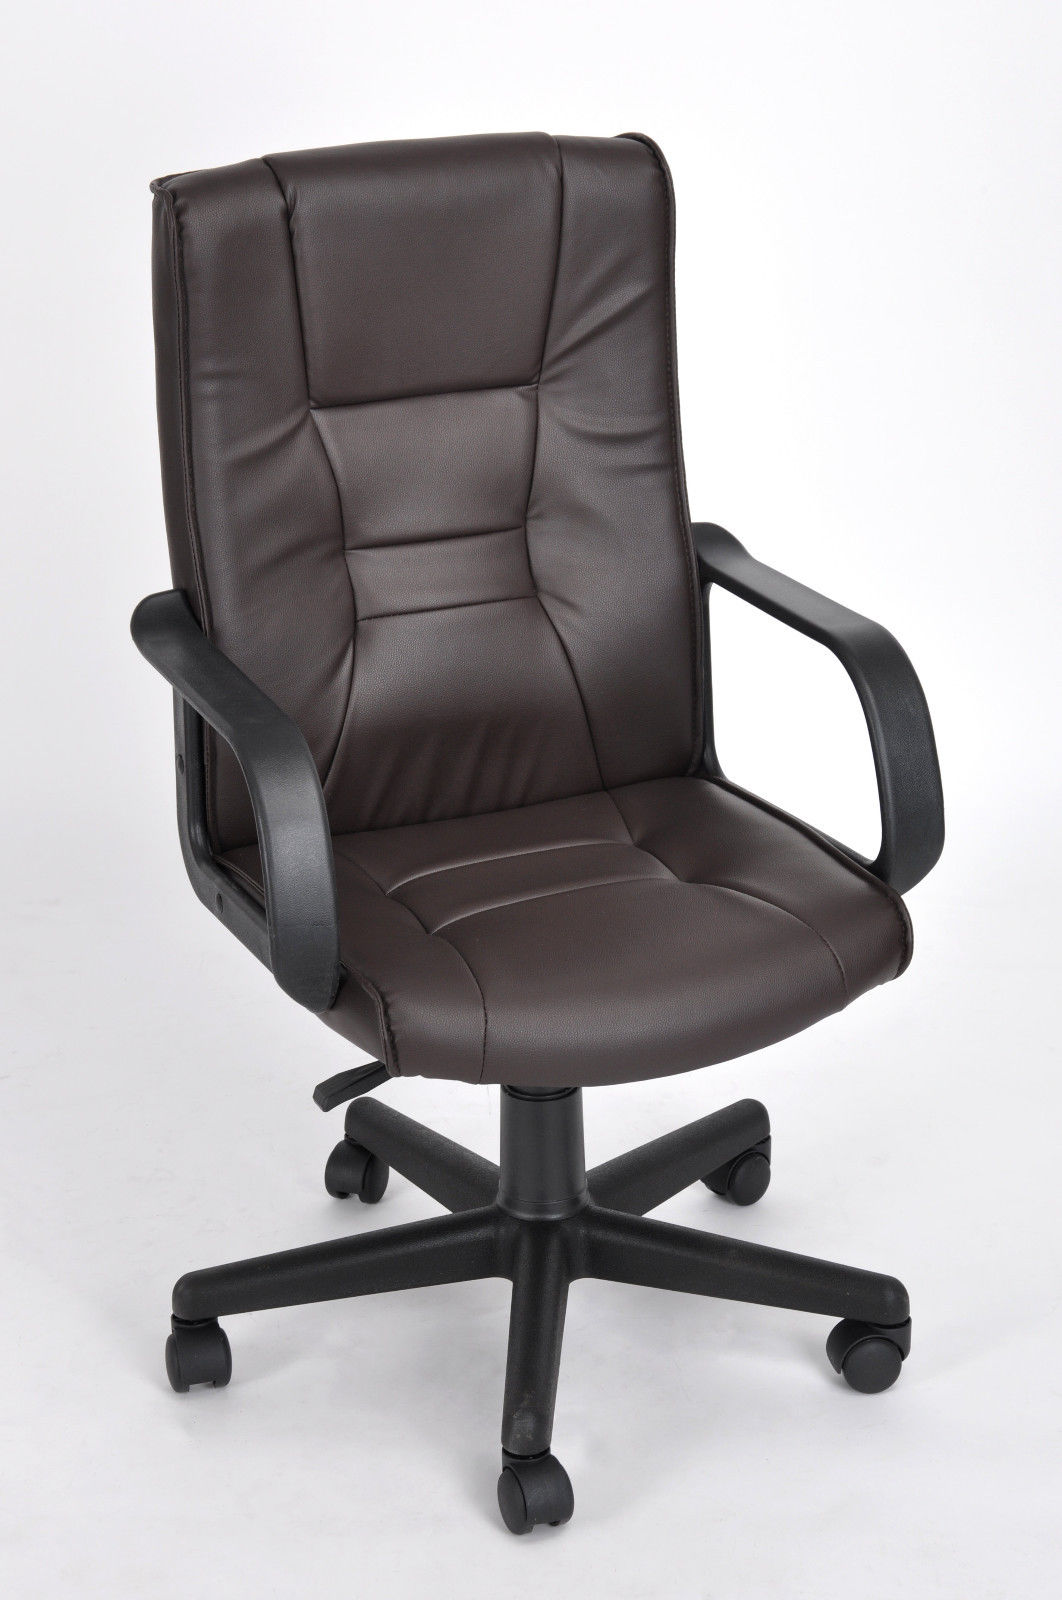 Brown Leather Office Chairs High Back Pu Leather Executive Office Desk Task Computer